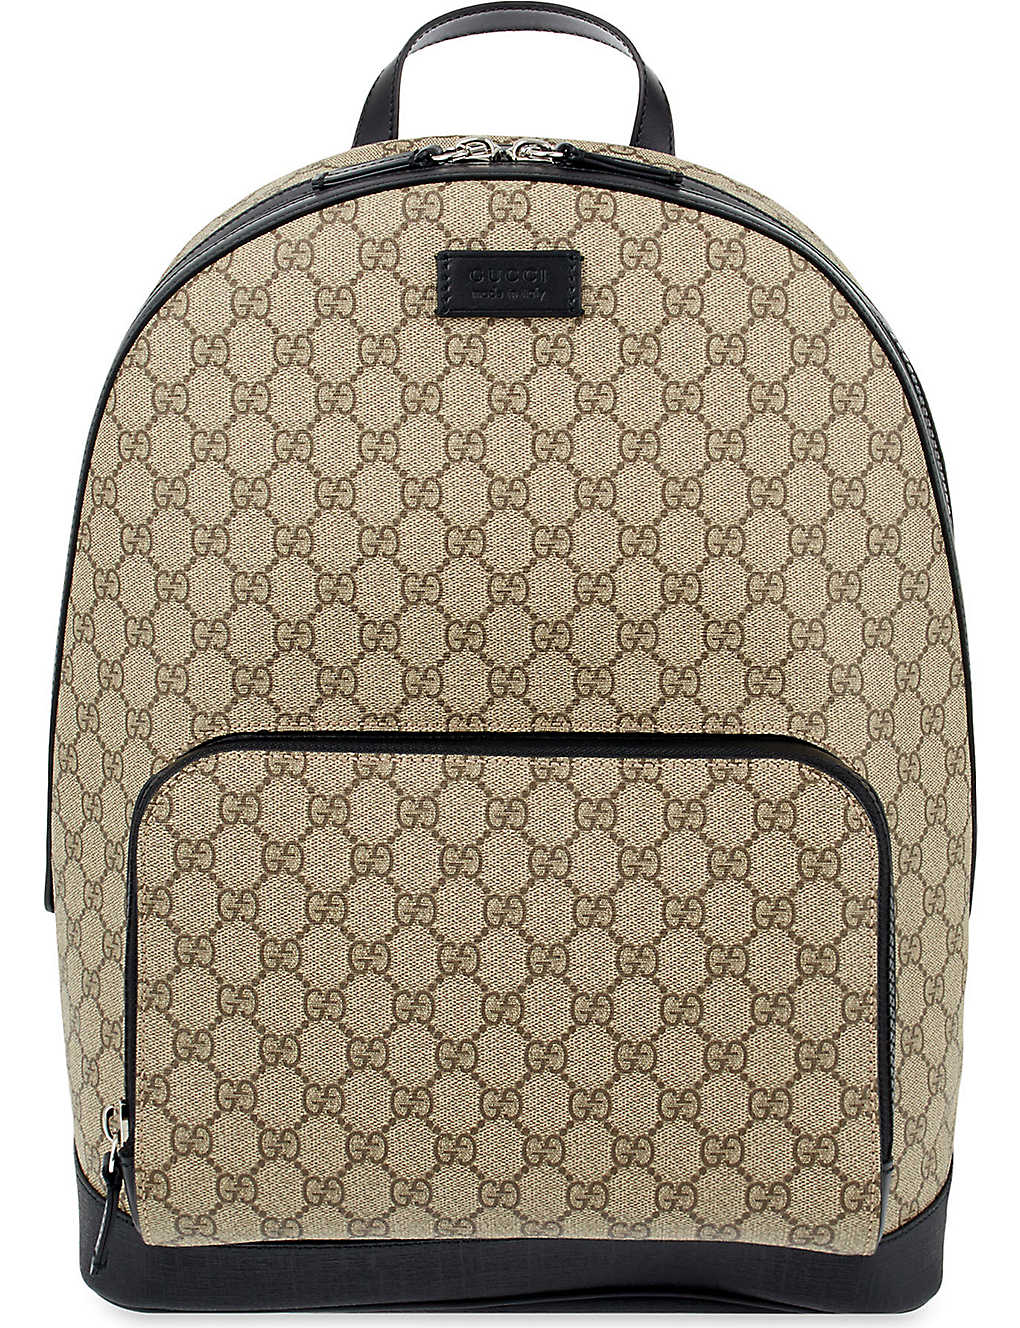 7f4733636c16 gucci bags - Shop for and Buy gucci bags Online - Macy's